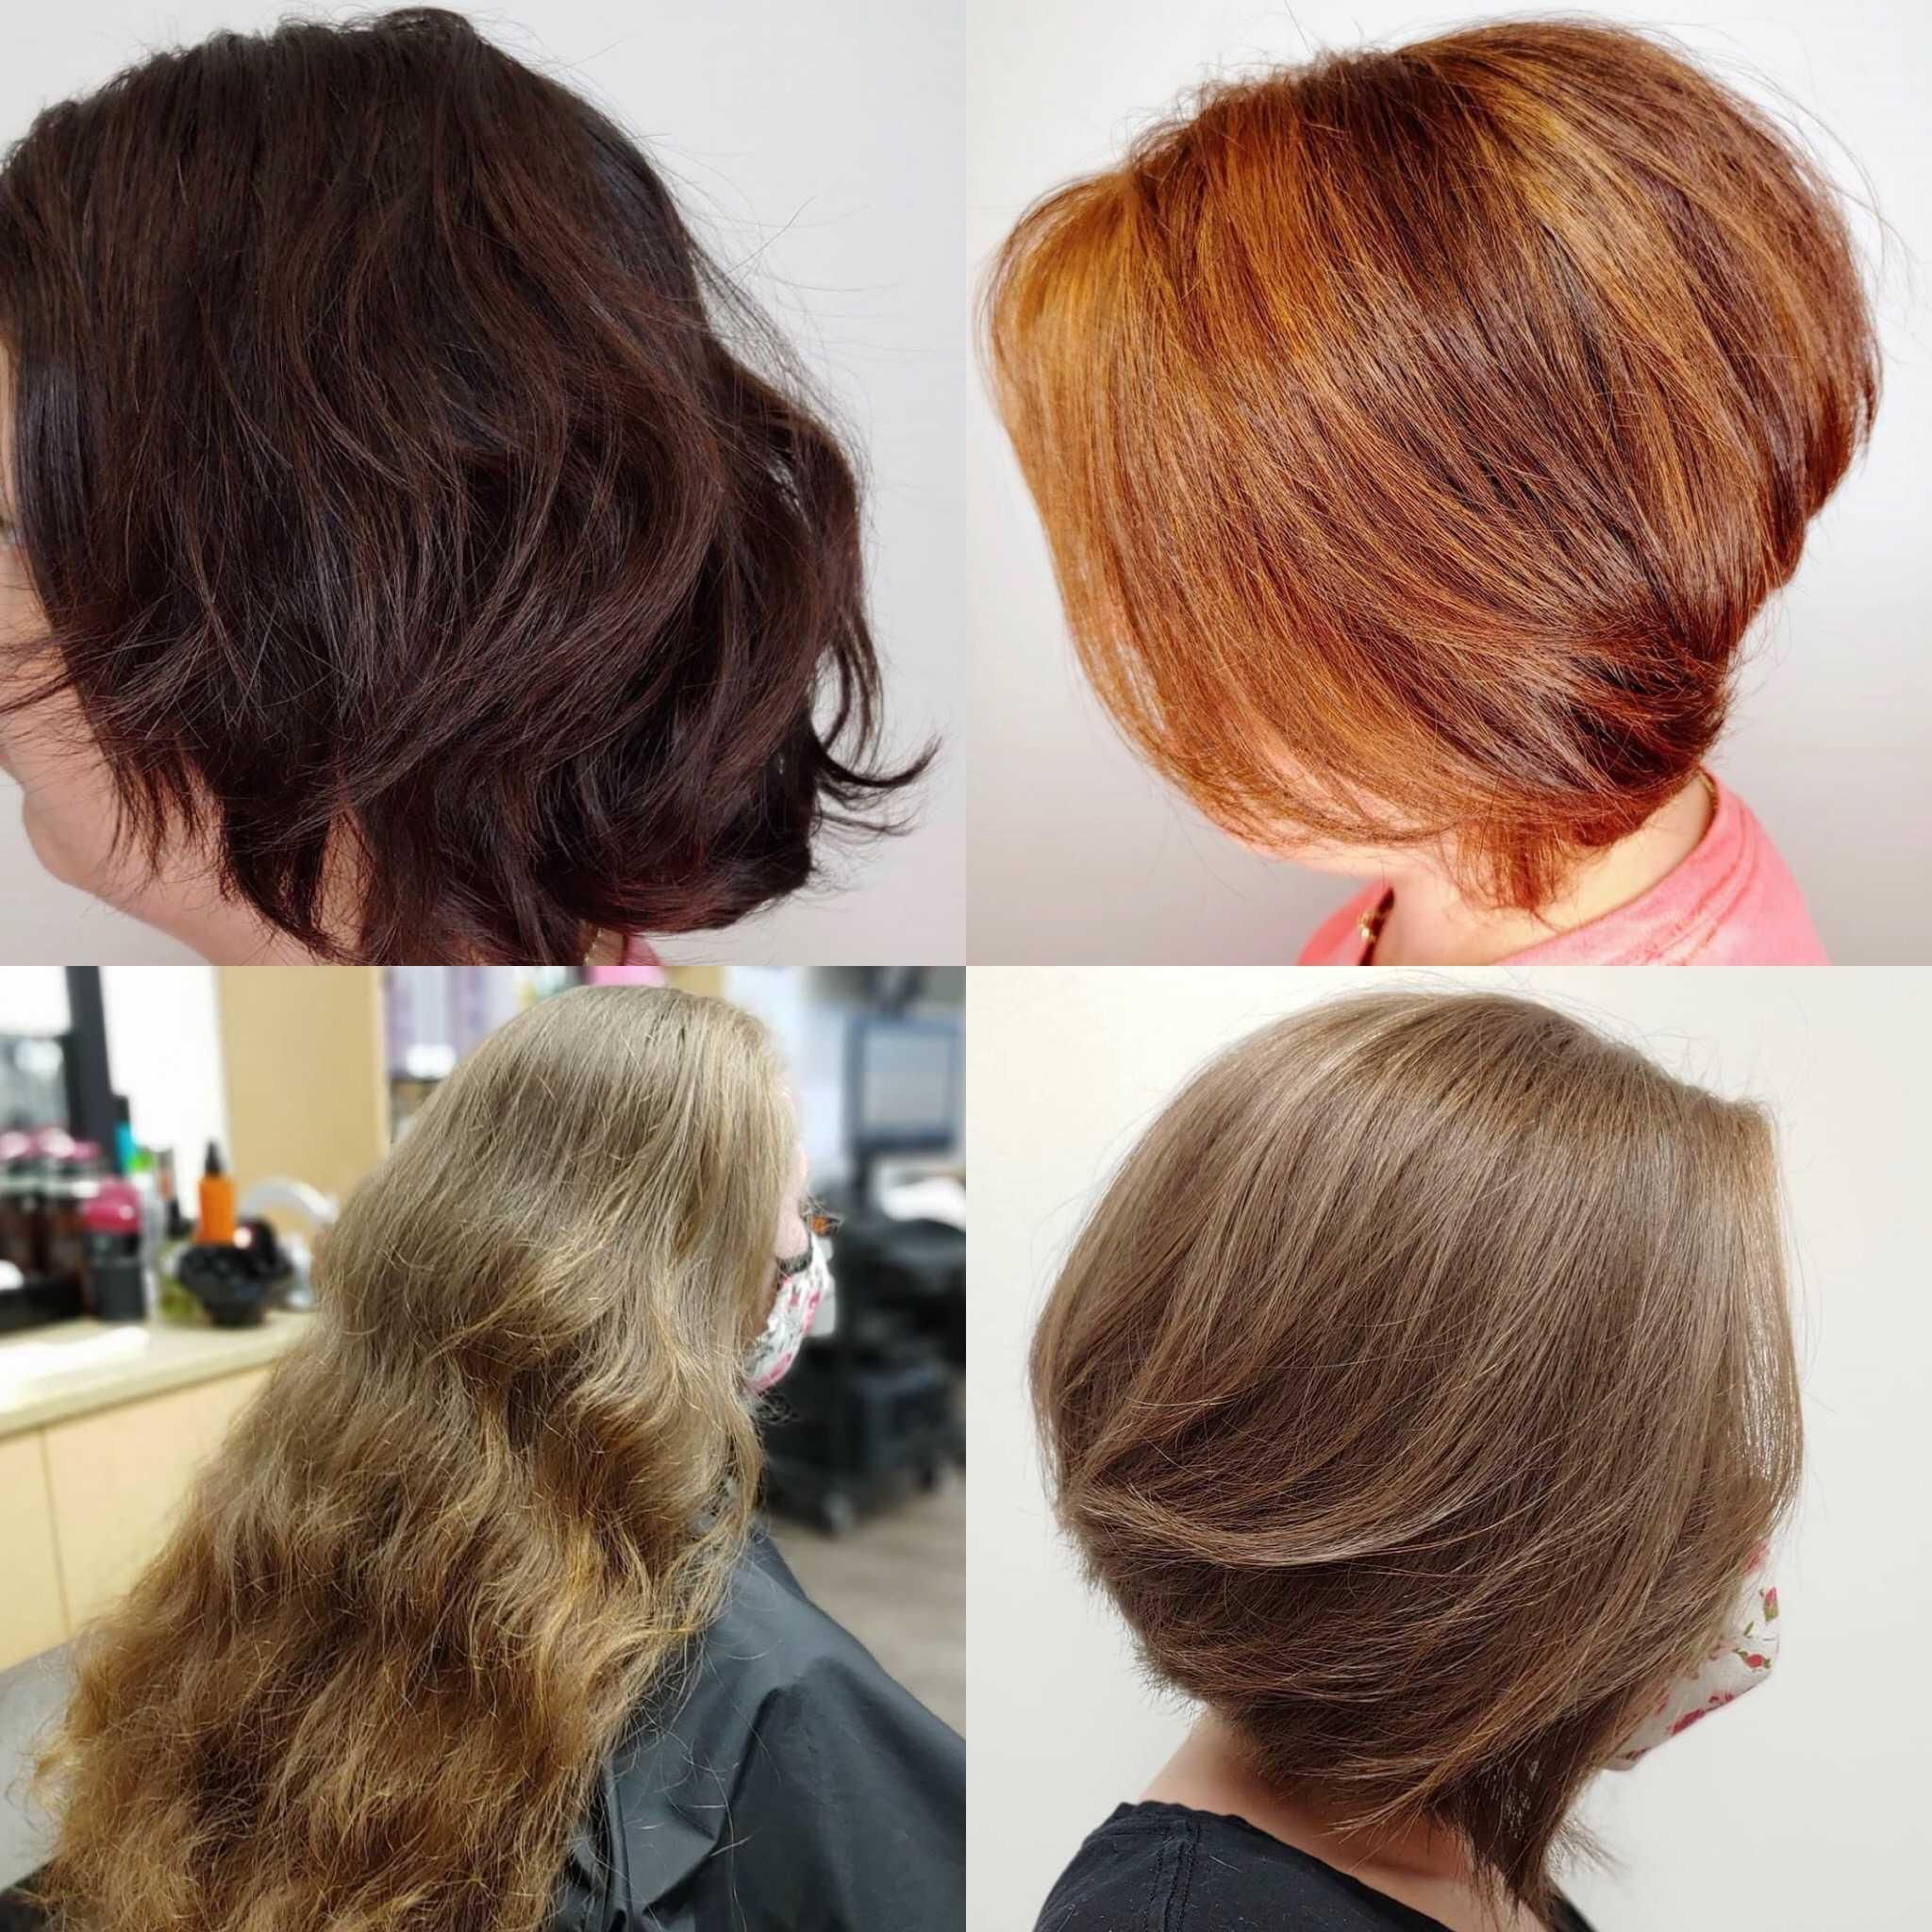 Pin On Haircut Style